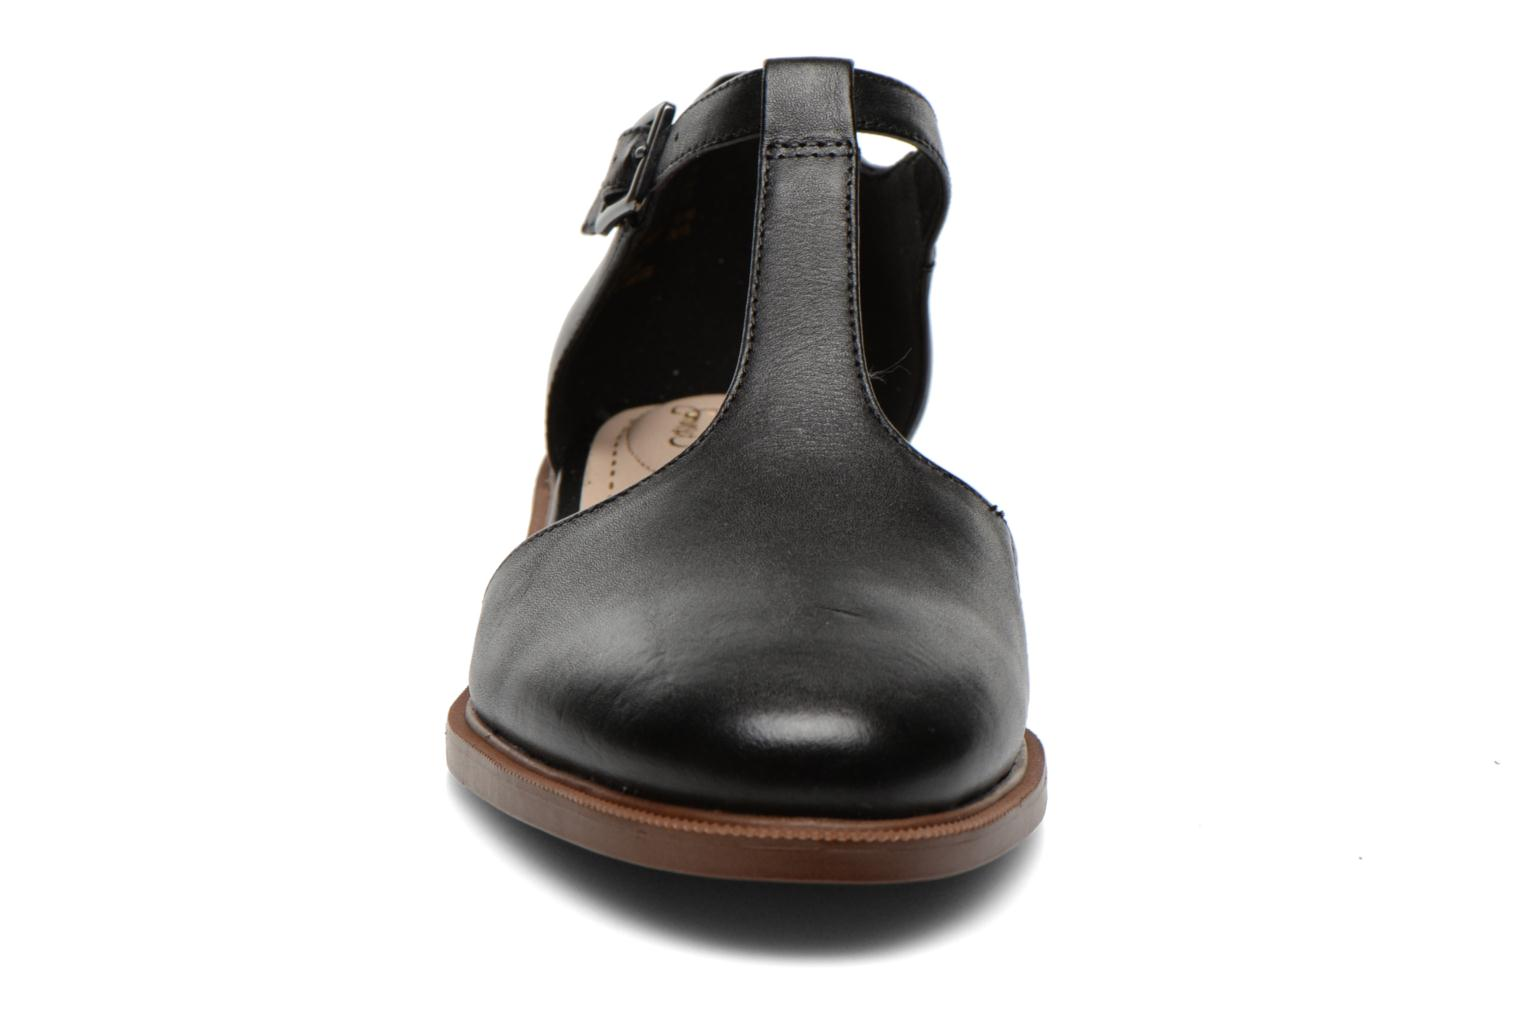 Taylor Palm Black leather